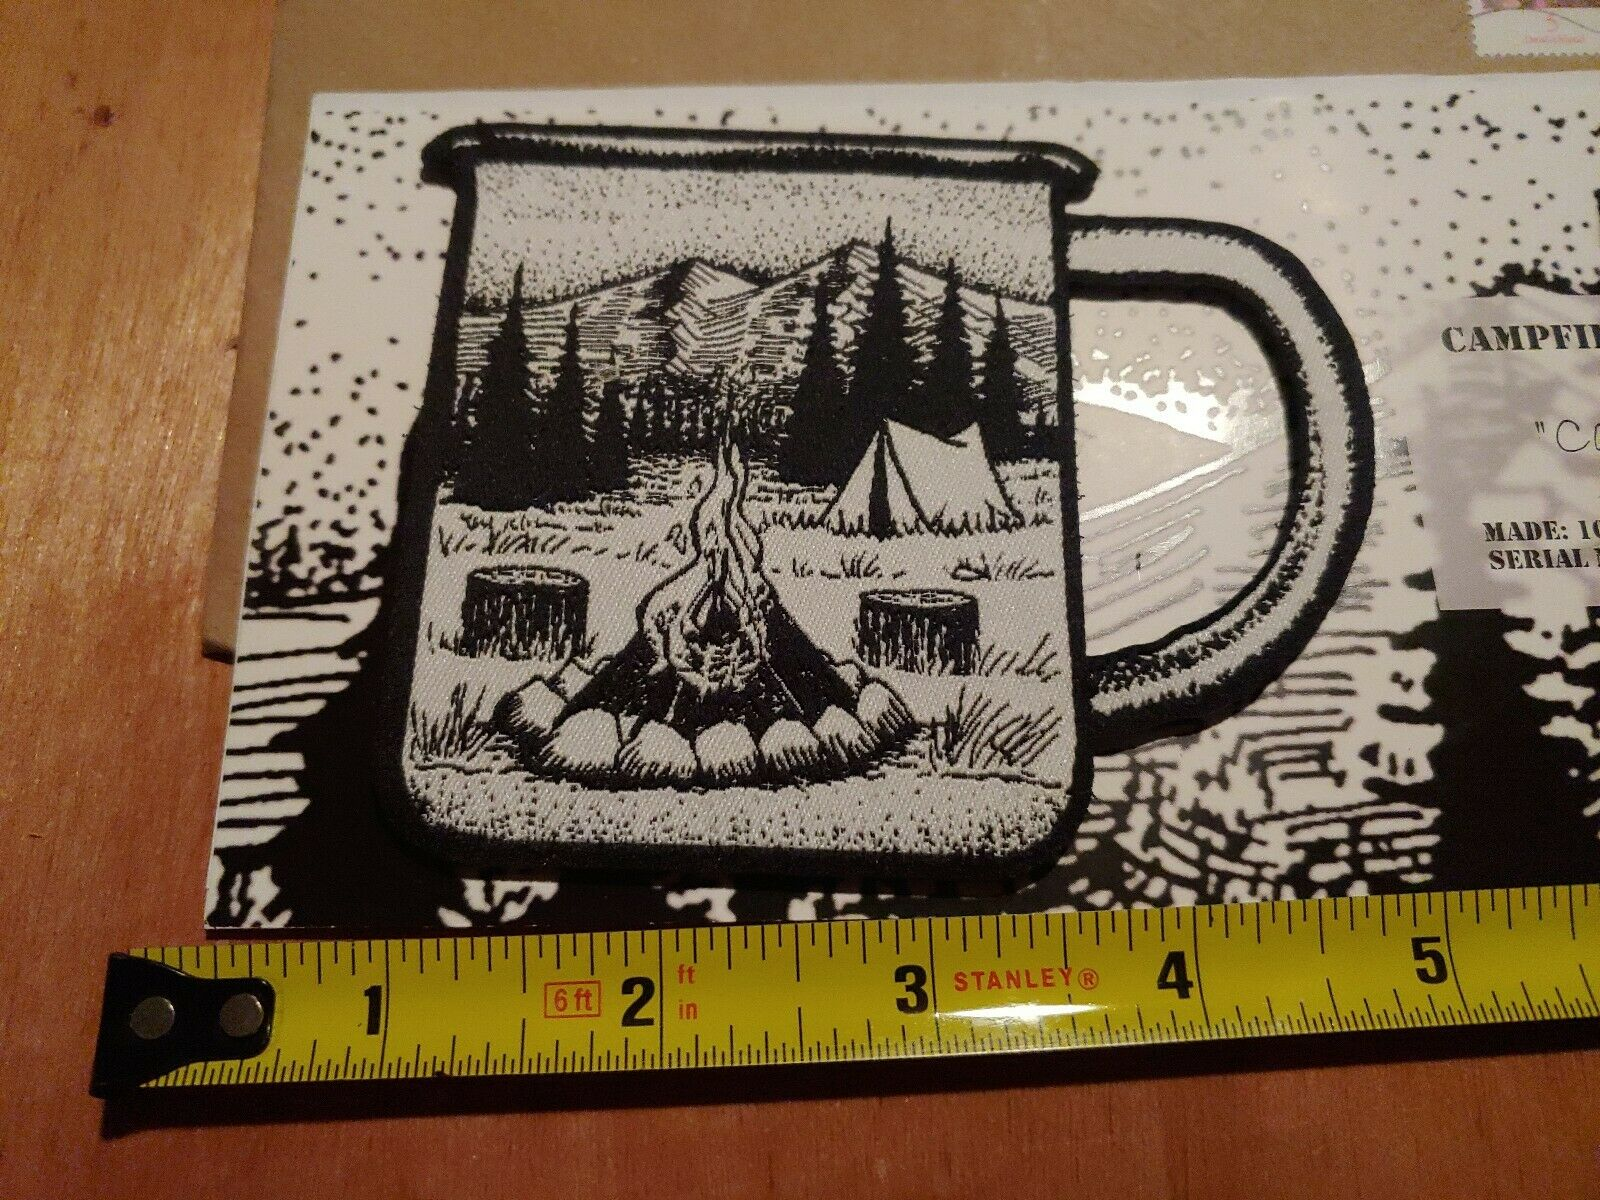 Campfire Coffee  Club Embroidered Morale Patch  enjoying your shopping